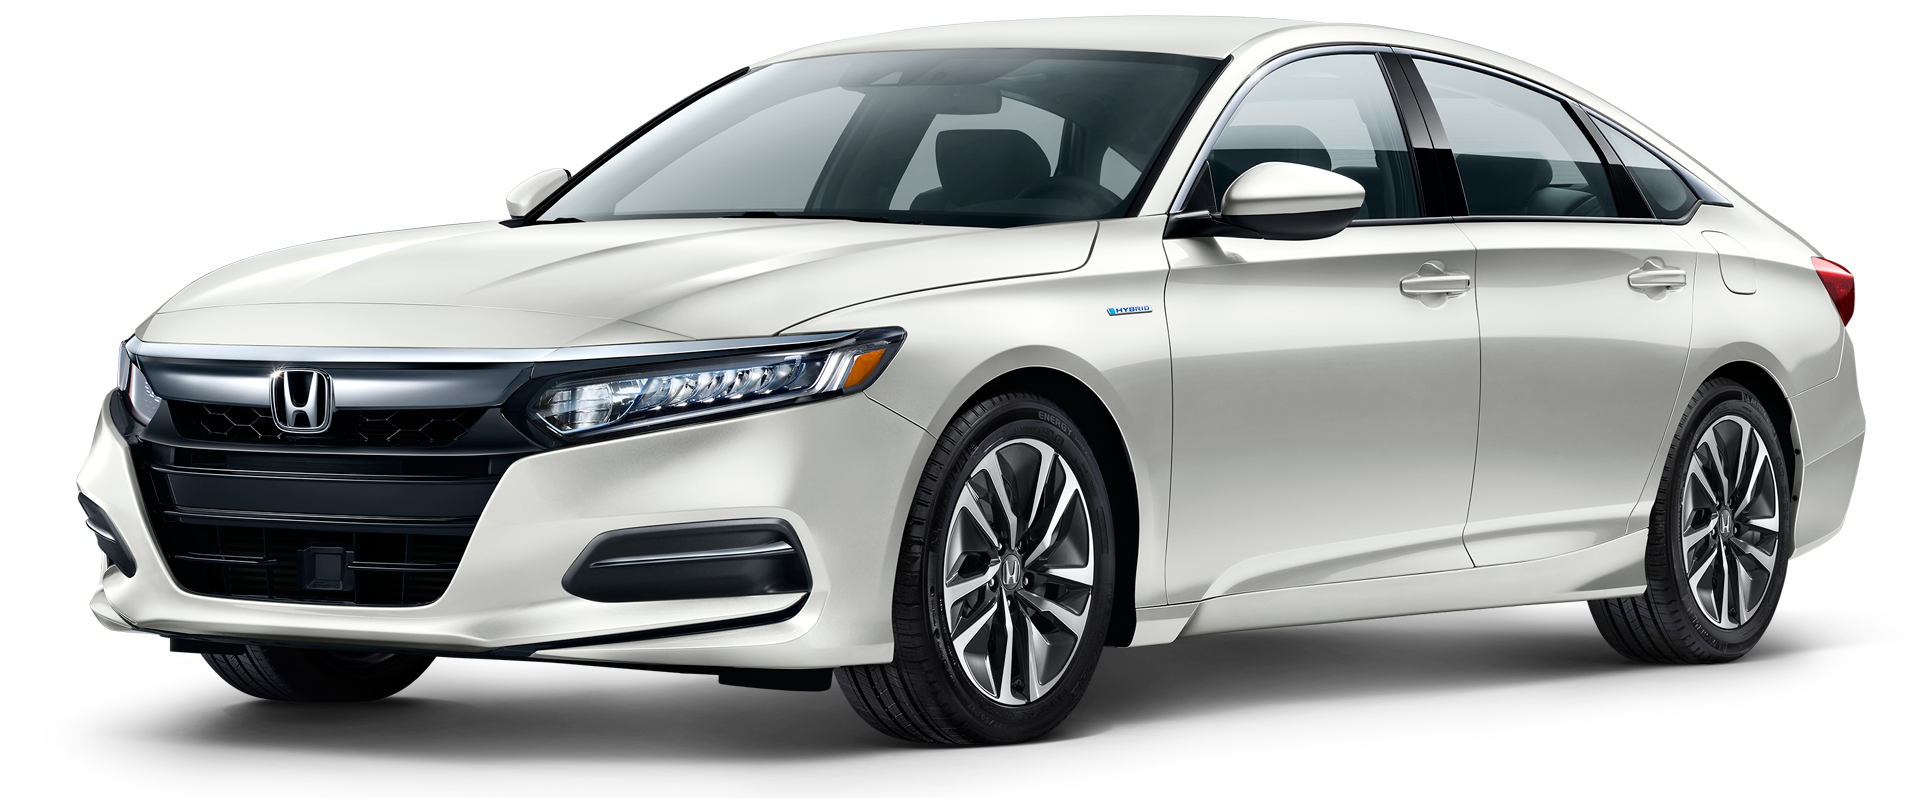 2018 honda accord hybrid incentives specials offers in